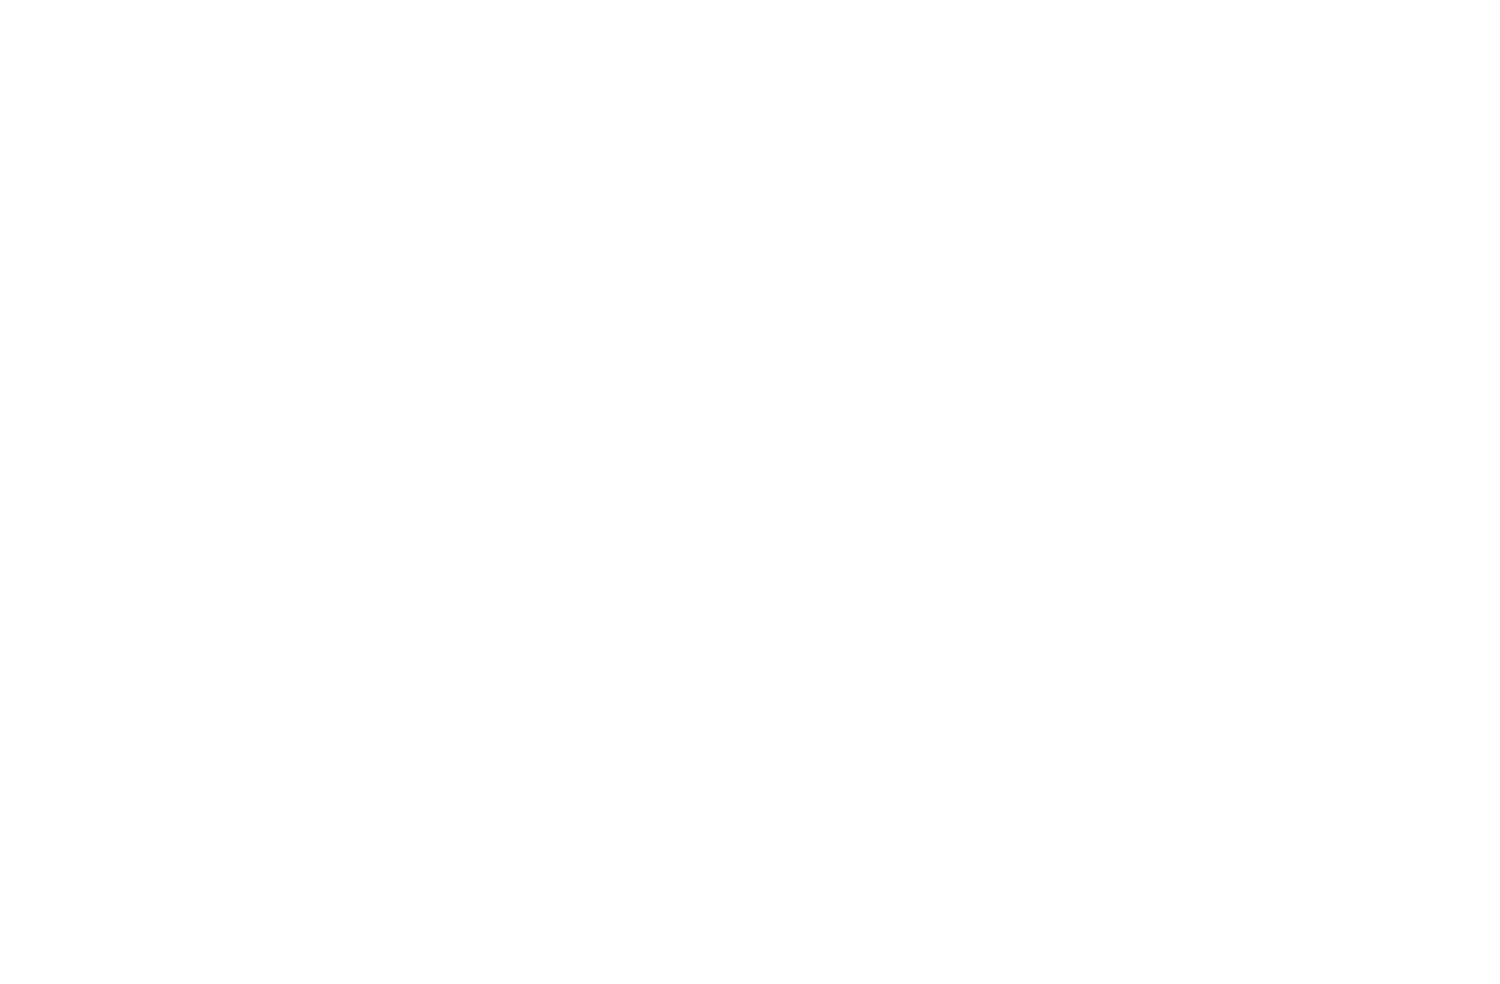 Chiet Productions